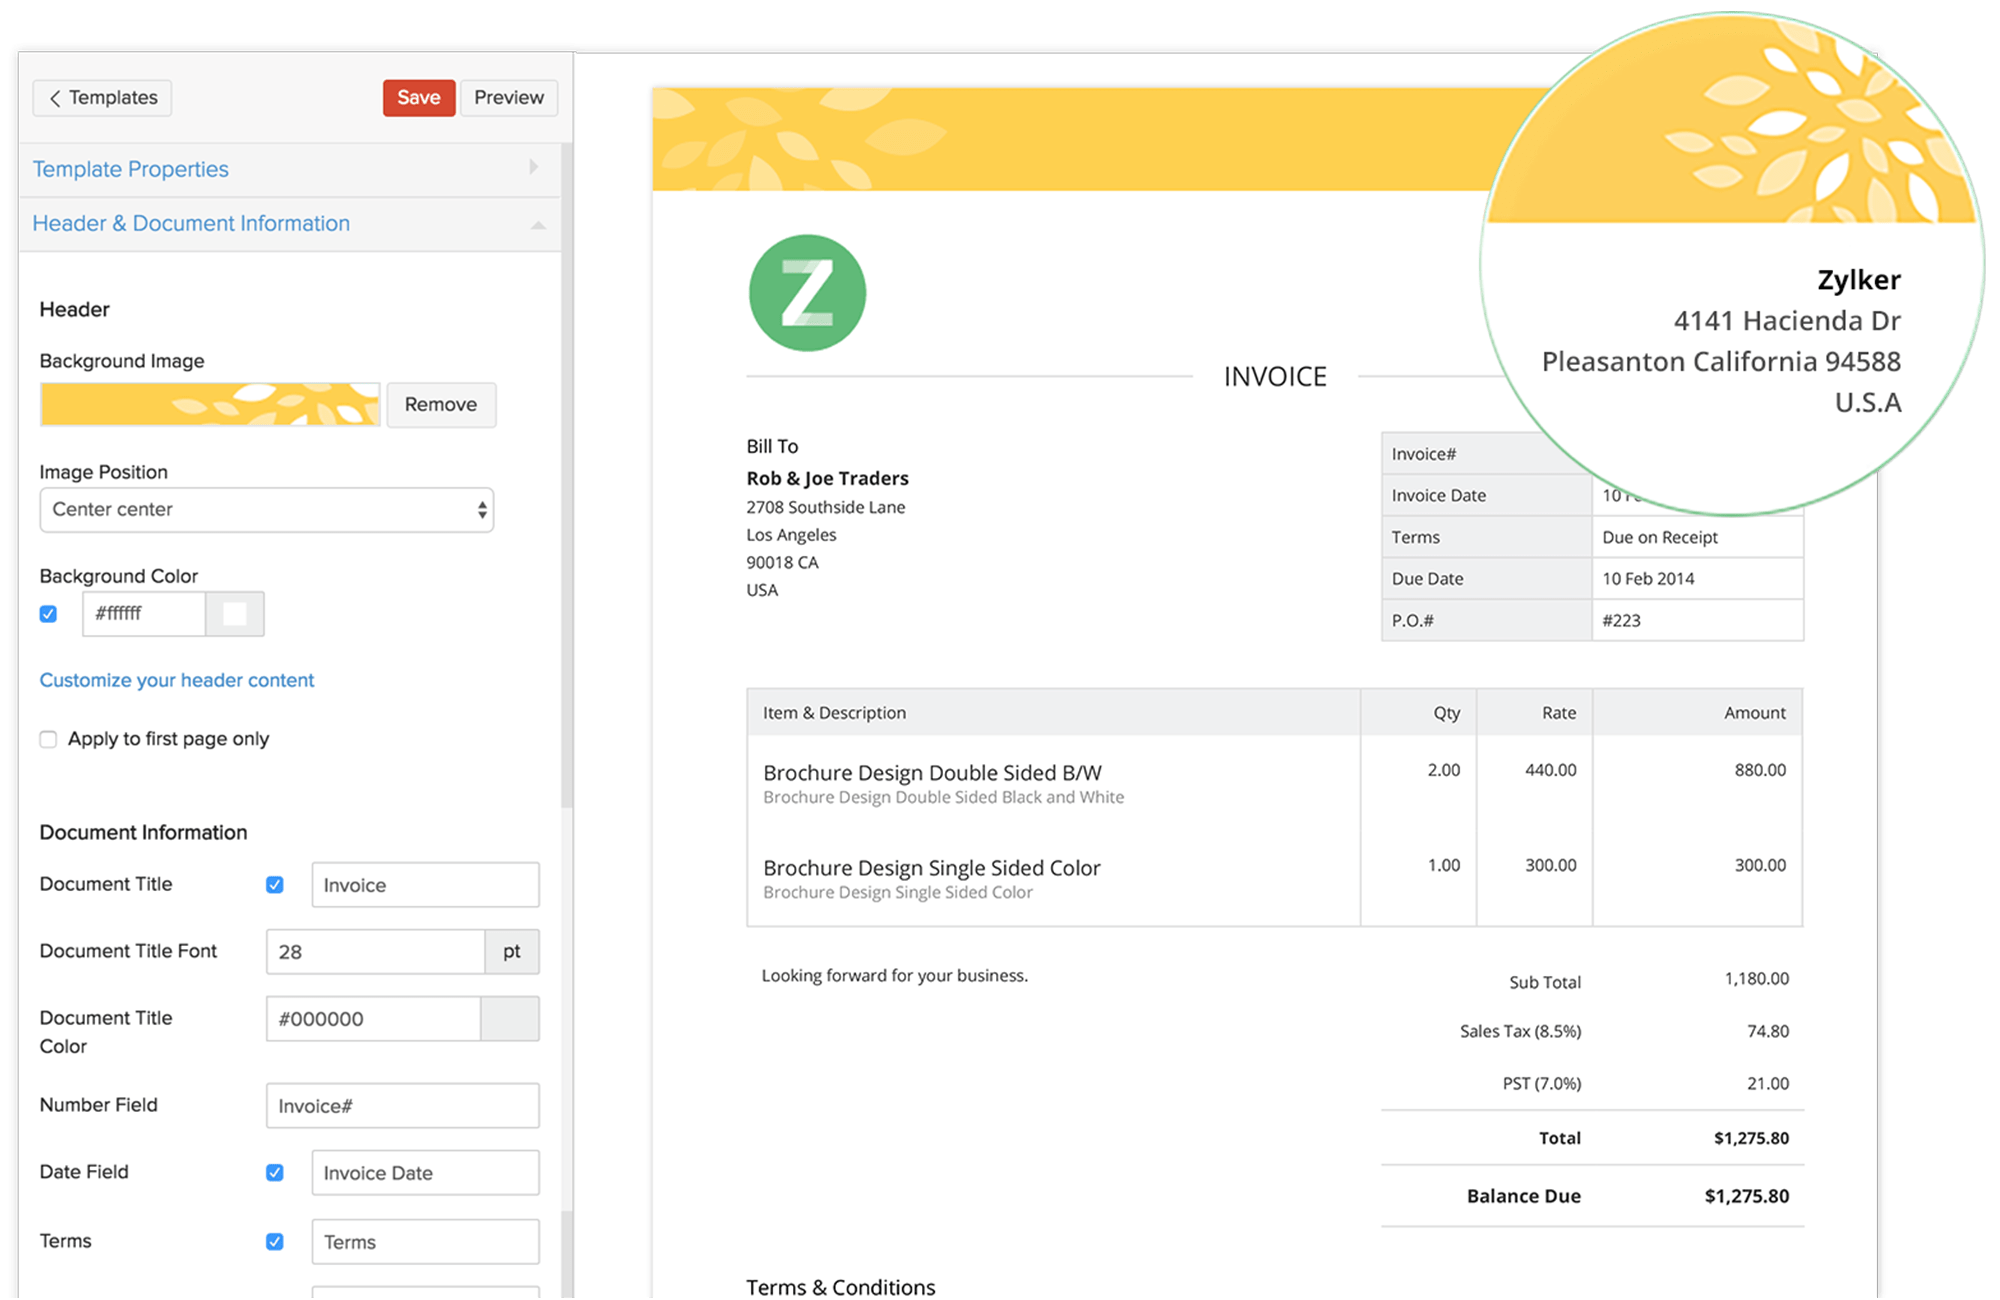 invoice templates from zoho invoice.customise your invoices, Invoice examples